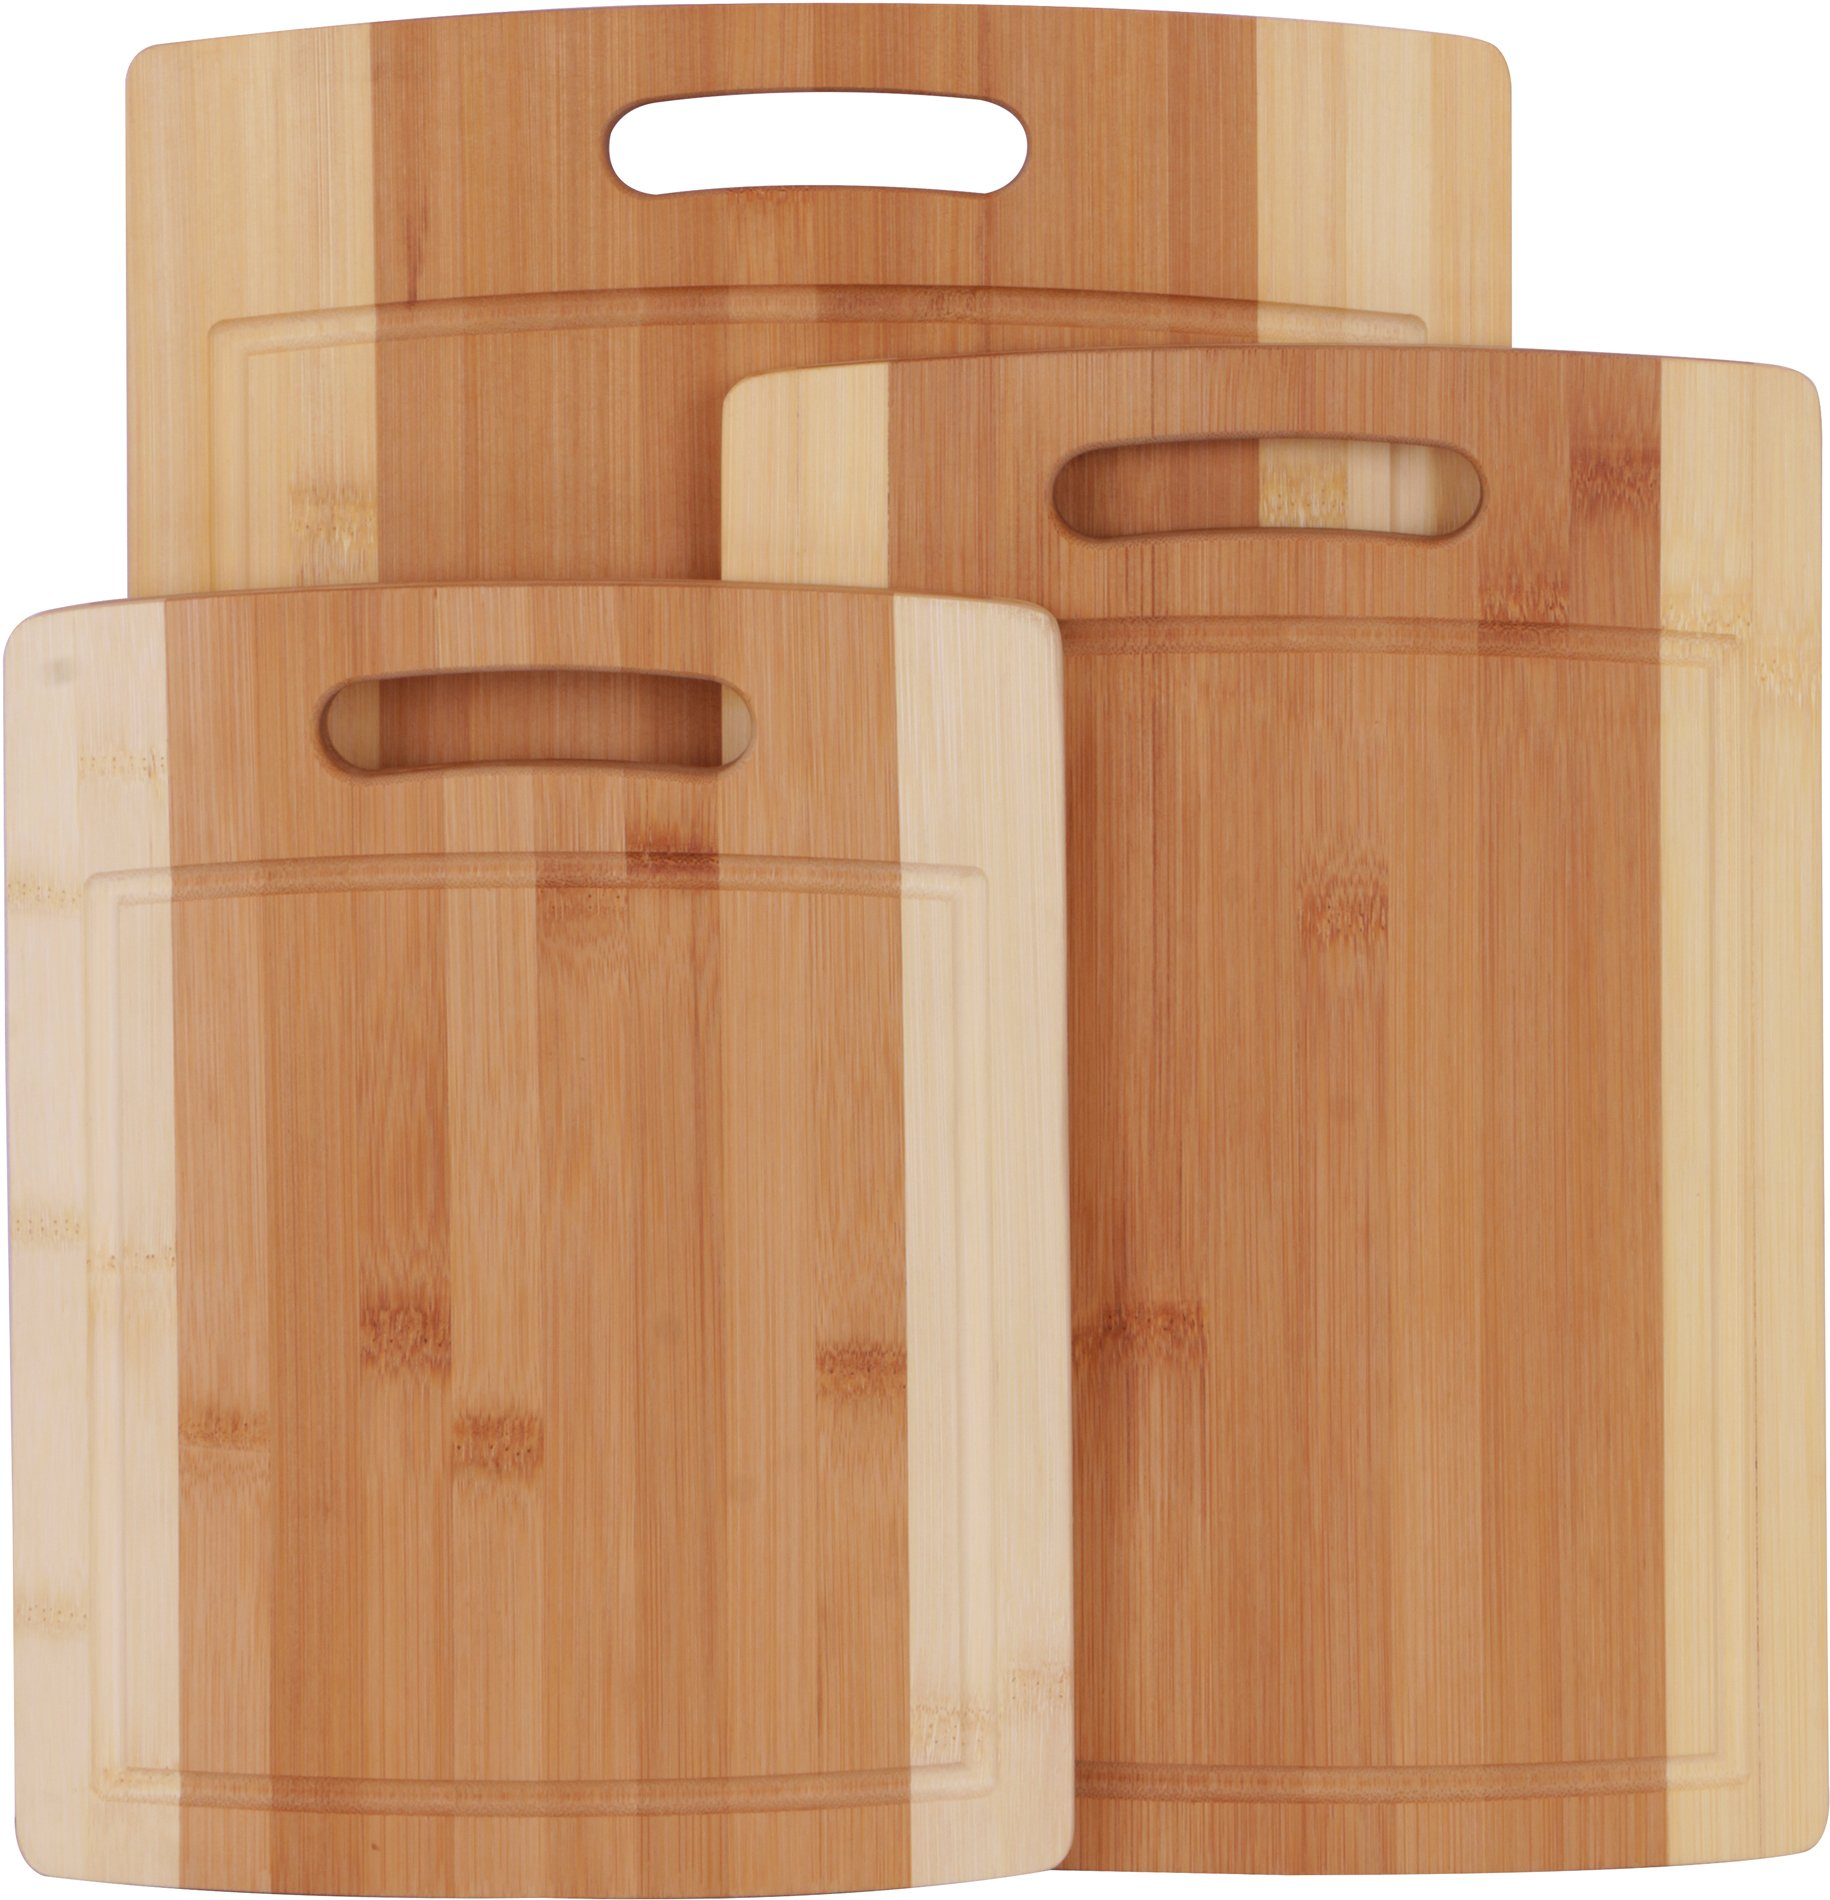 Utopia Kitchen Natural Bamboo Cutting Boards with Juice Grooves - Wooden Cutting Boards 3 Piece Set by Utopia Kitchen (Image #7)